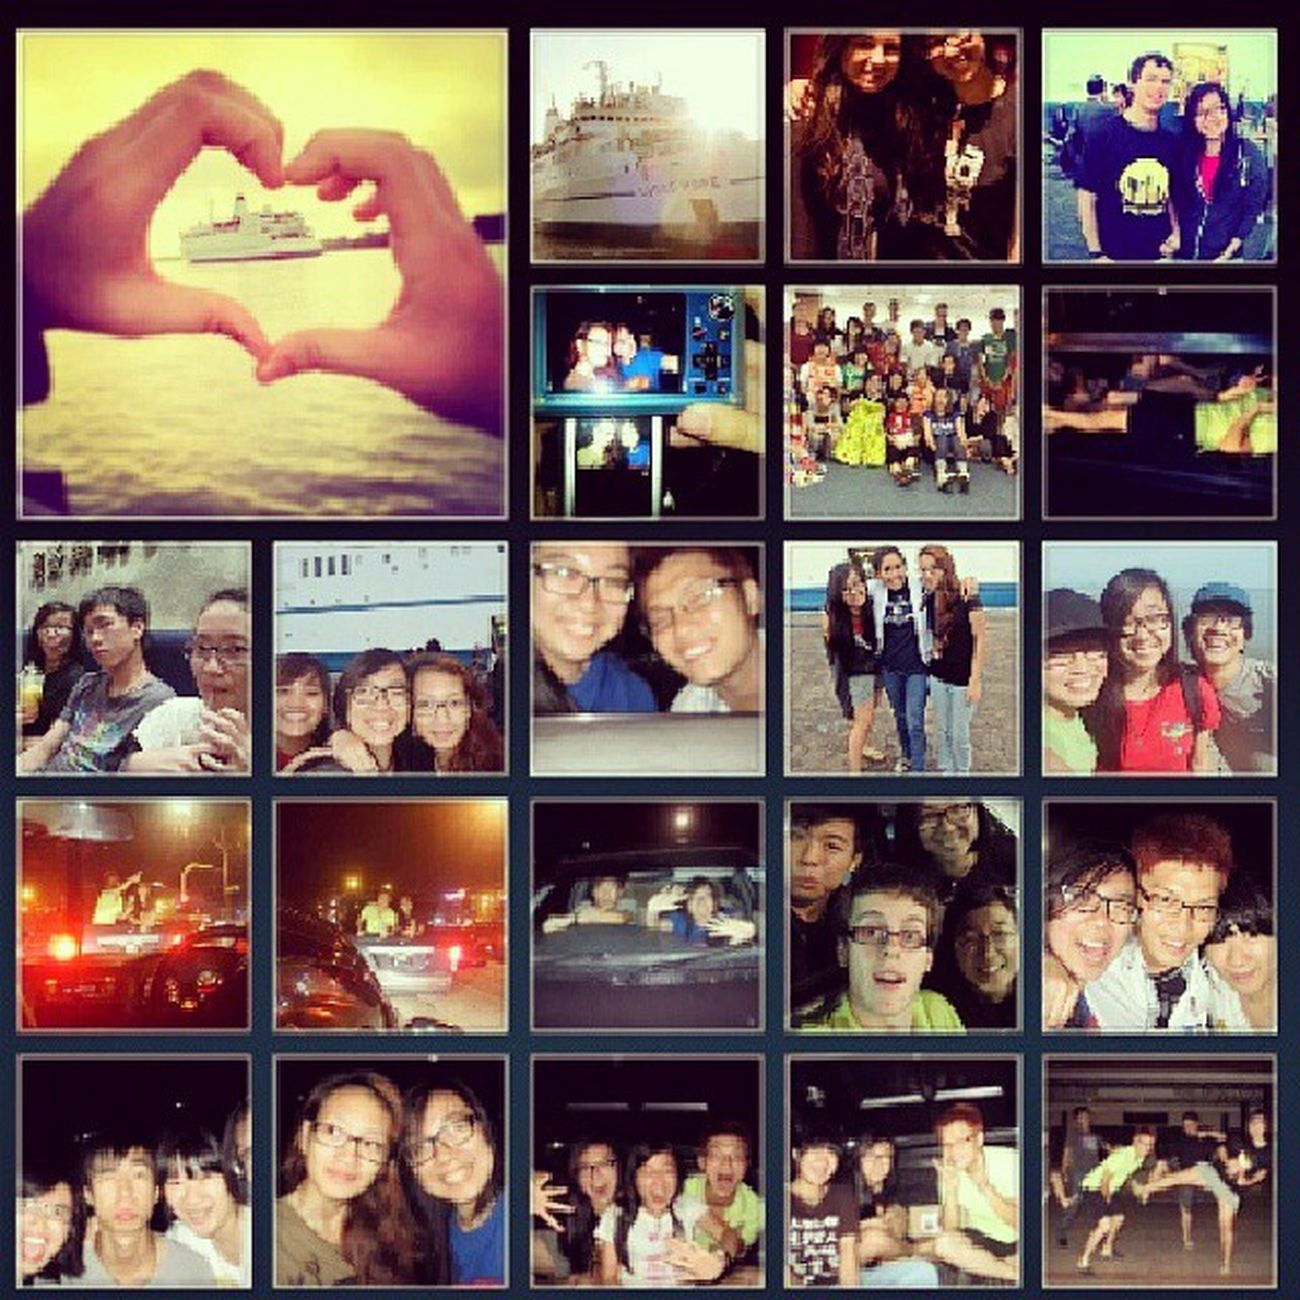 Every time I feel sad, I'd look at all these photos and feel happy again because of all the stupid fun things we did together from dancing in the middle of the road and friendship park, riding illegally at the back of Melissa's awesome pick up driven by Enoch, nearly drowning in a pool, the time we were scolded for racing at the wharf and all the fun times we had eating together. I really really miss these Crazy Fun times ALOT. If I had a time machine, I'd travel back there to do them all over again :) Happinessoverload Someonegetmeatimemachineplease awesomeness noregrets crazyfunpeopleyay